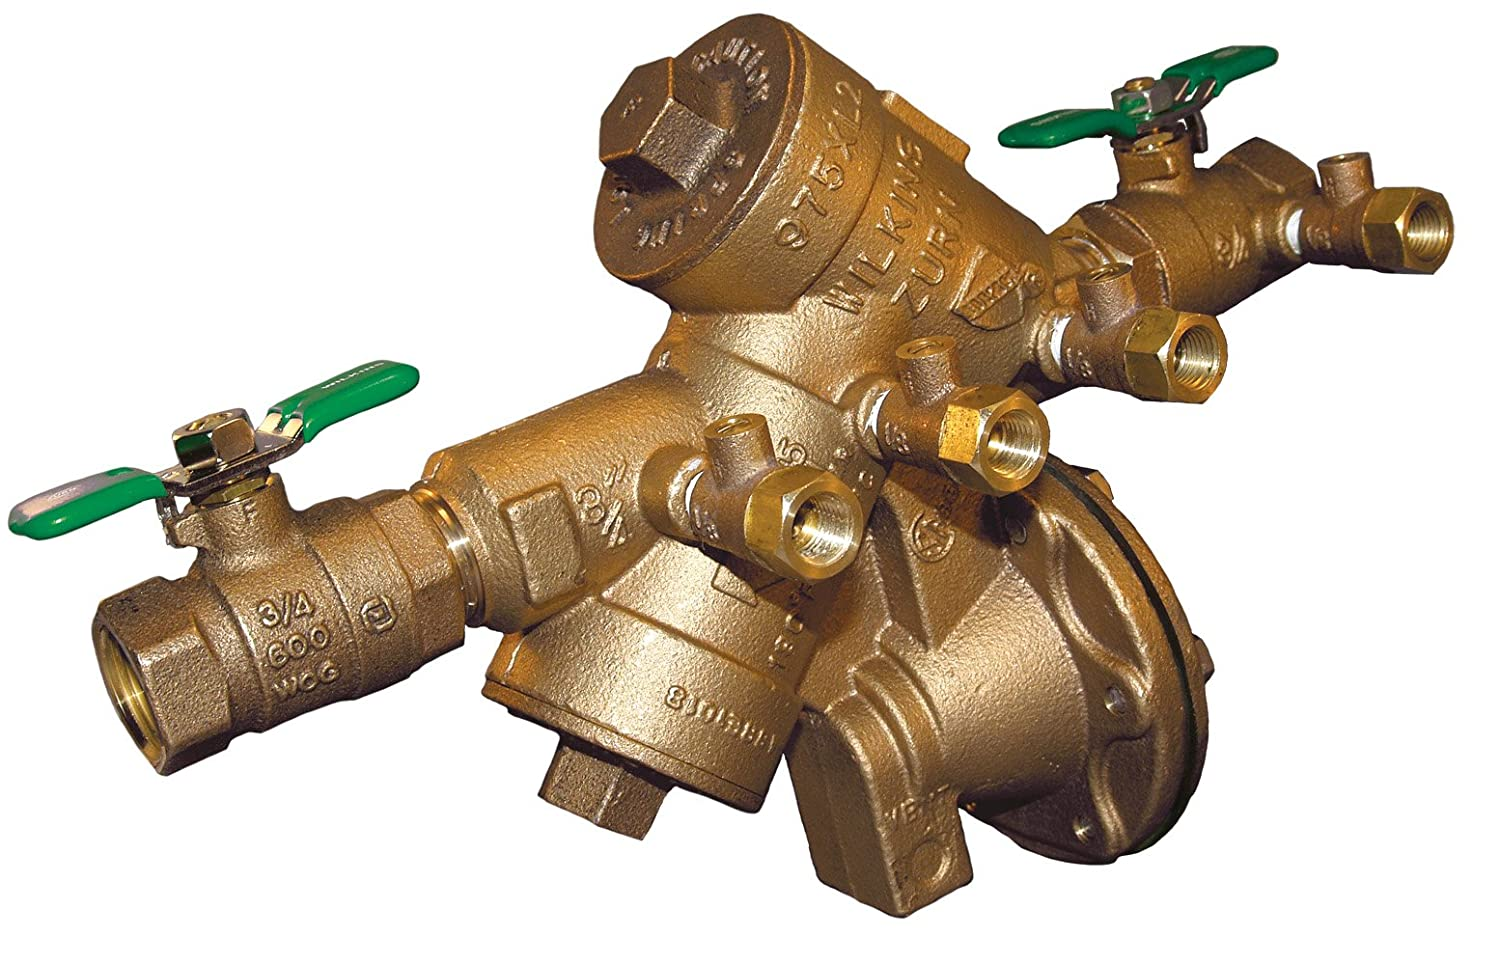 Wilkins 34-975XL2 3/4-Inch Lead Free Reduced Pressure Backflow Preventer